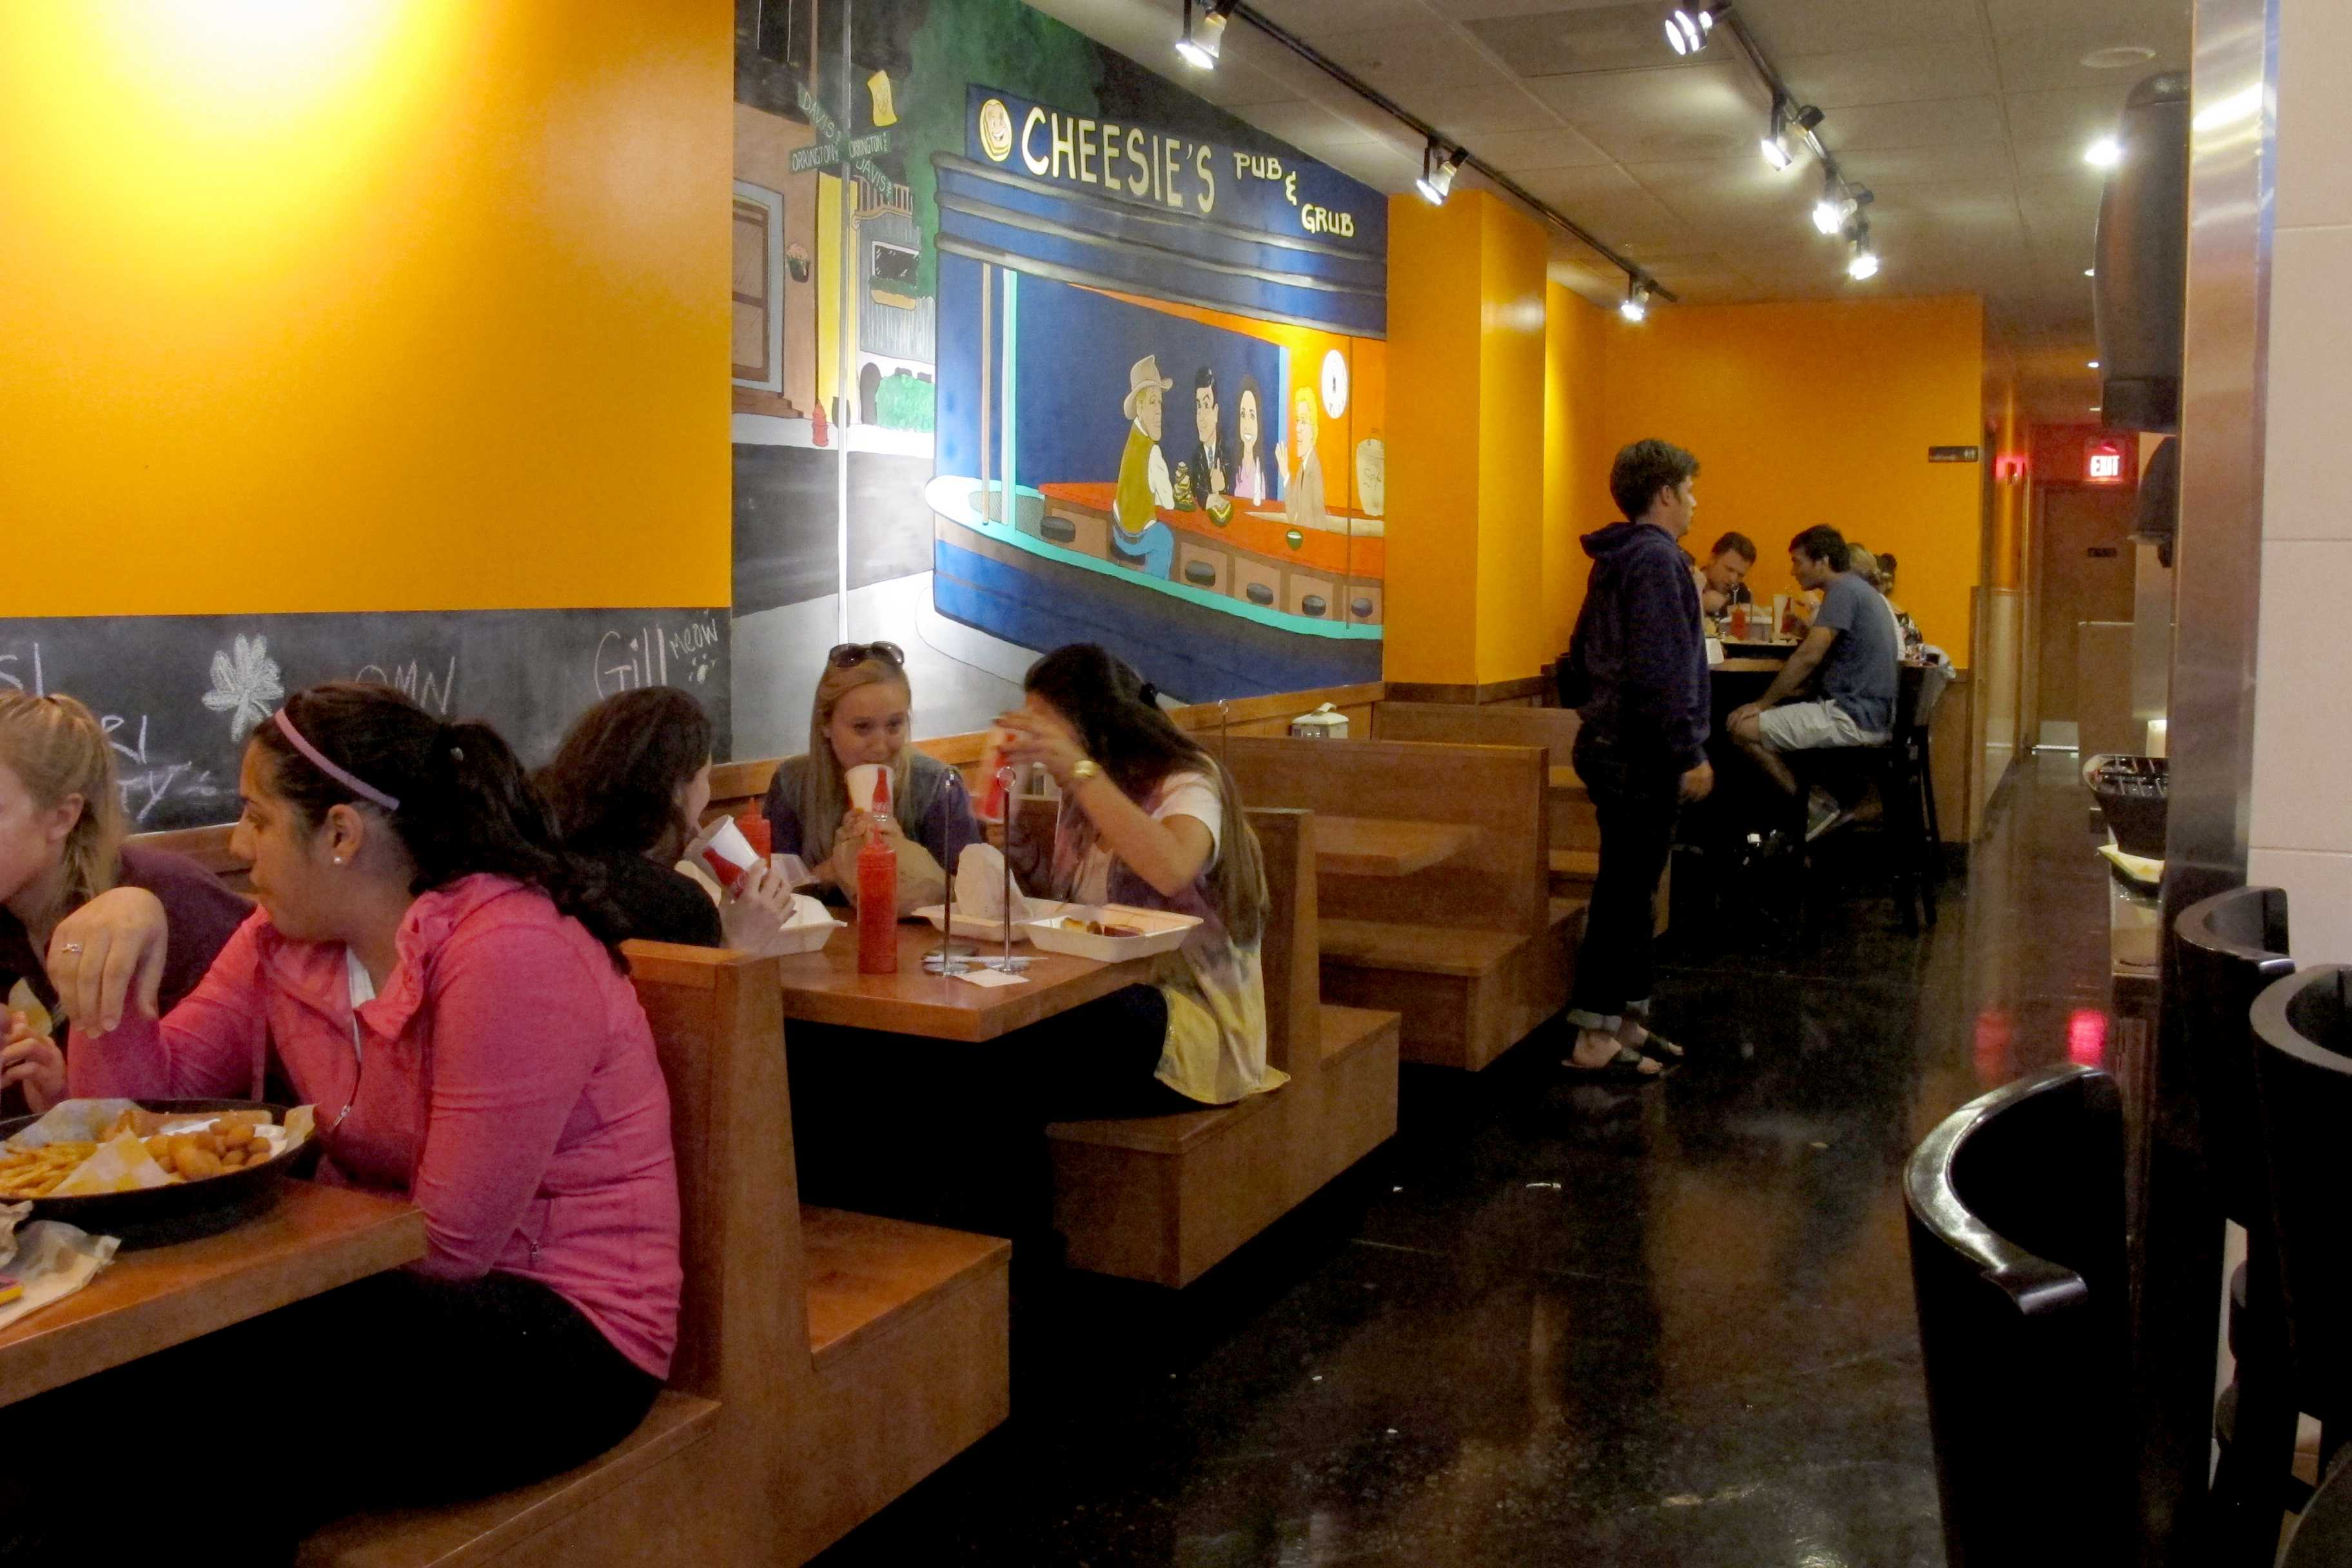 Northwestern students dine at Cheesie's. The Davis Street restaurant has become a popular spot for students, given the few Evanston restaurants that stay open late.